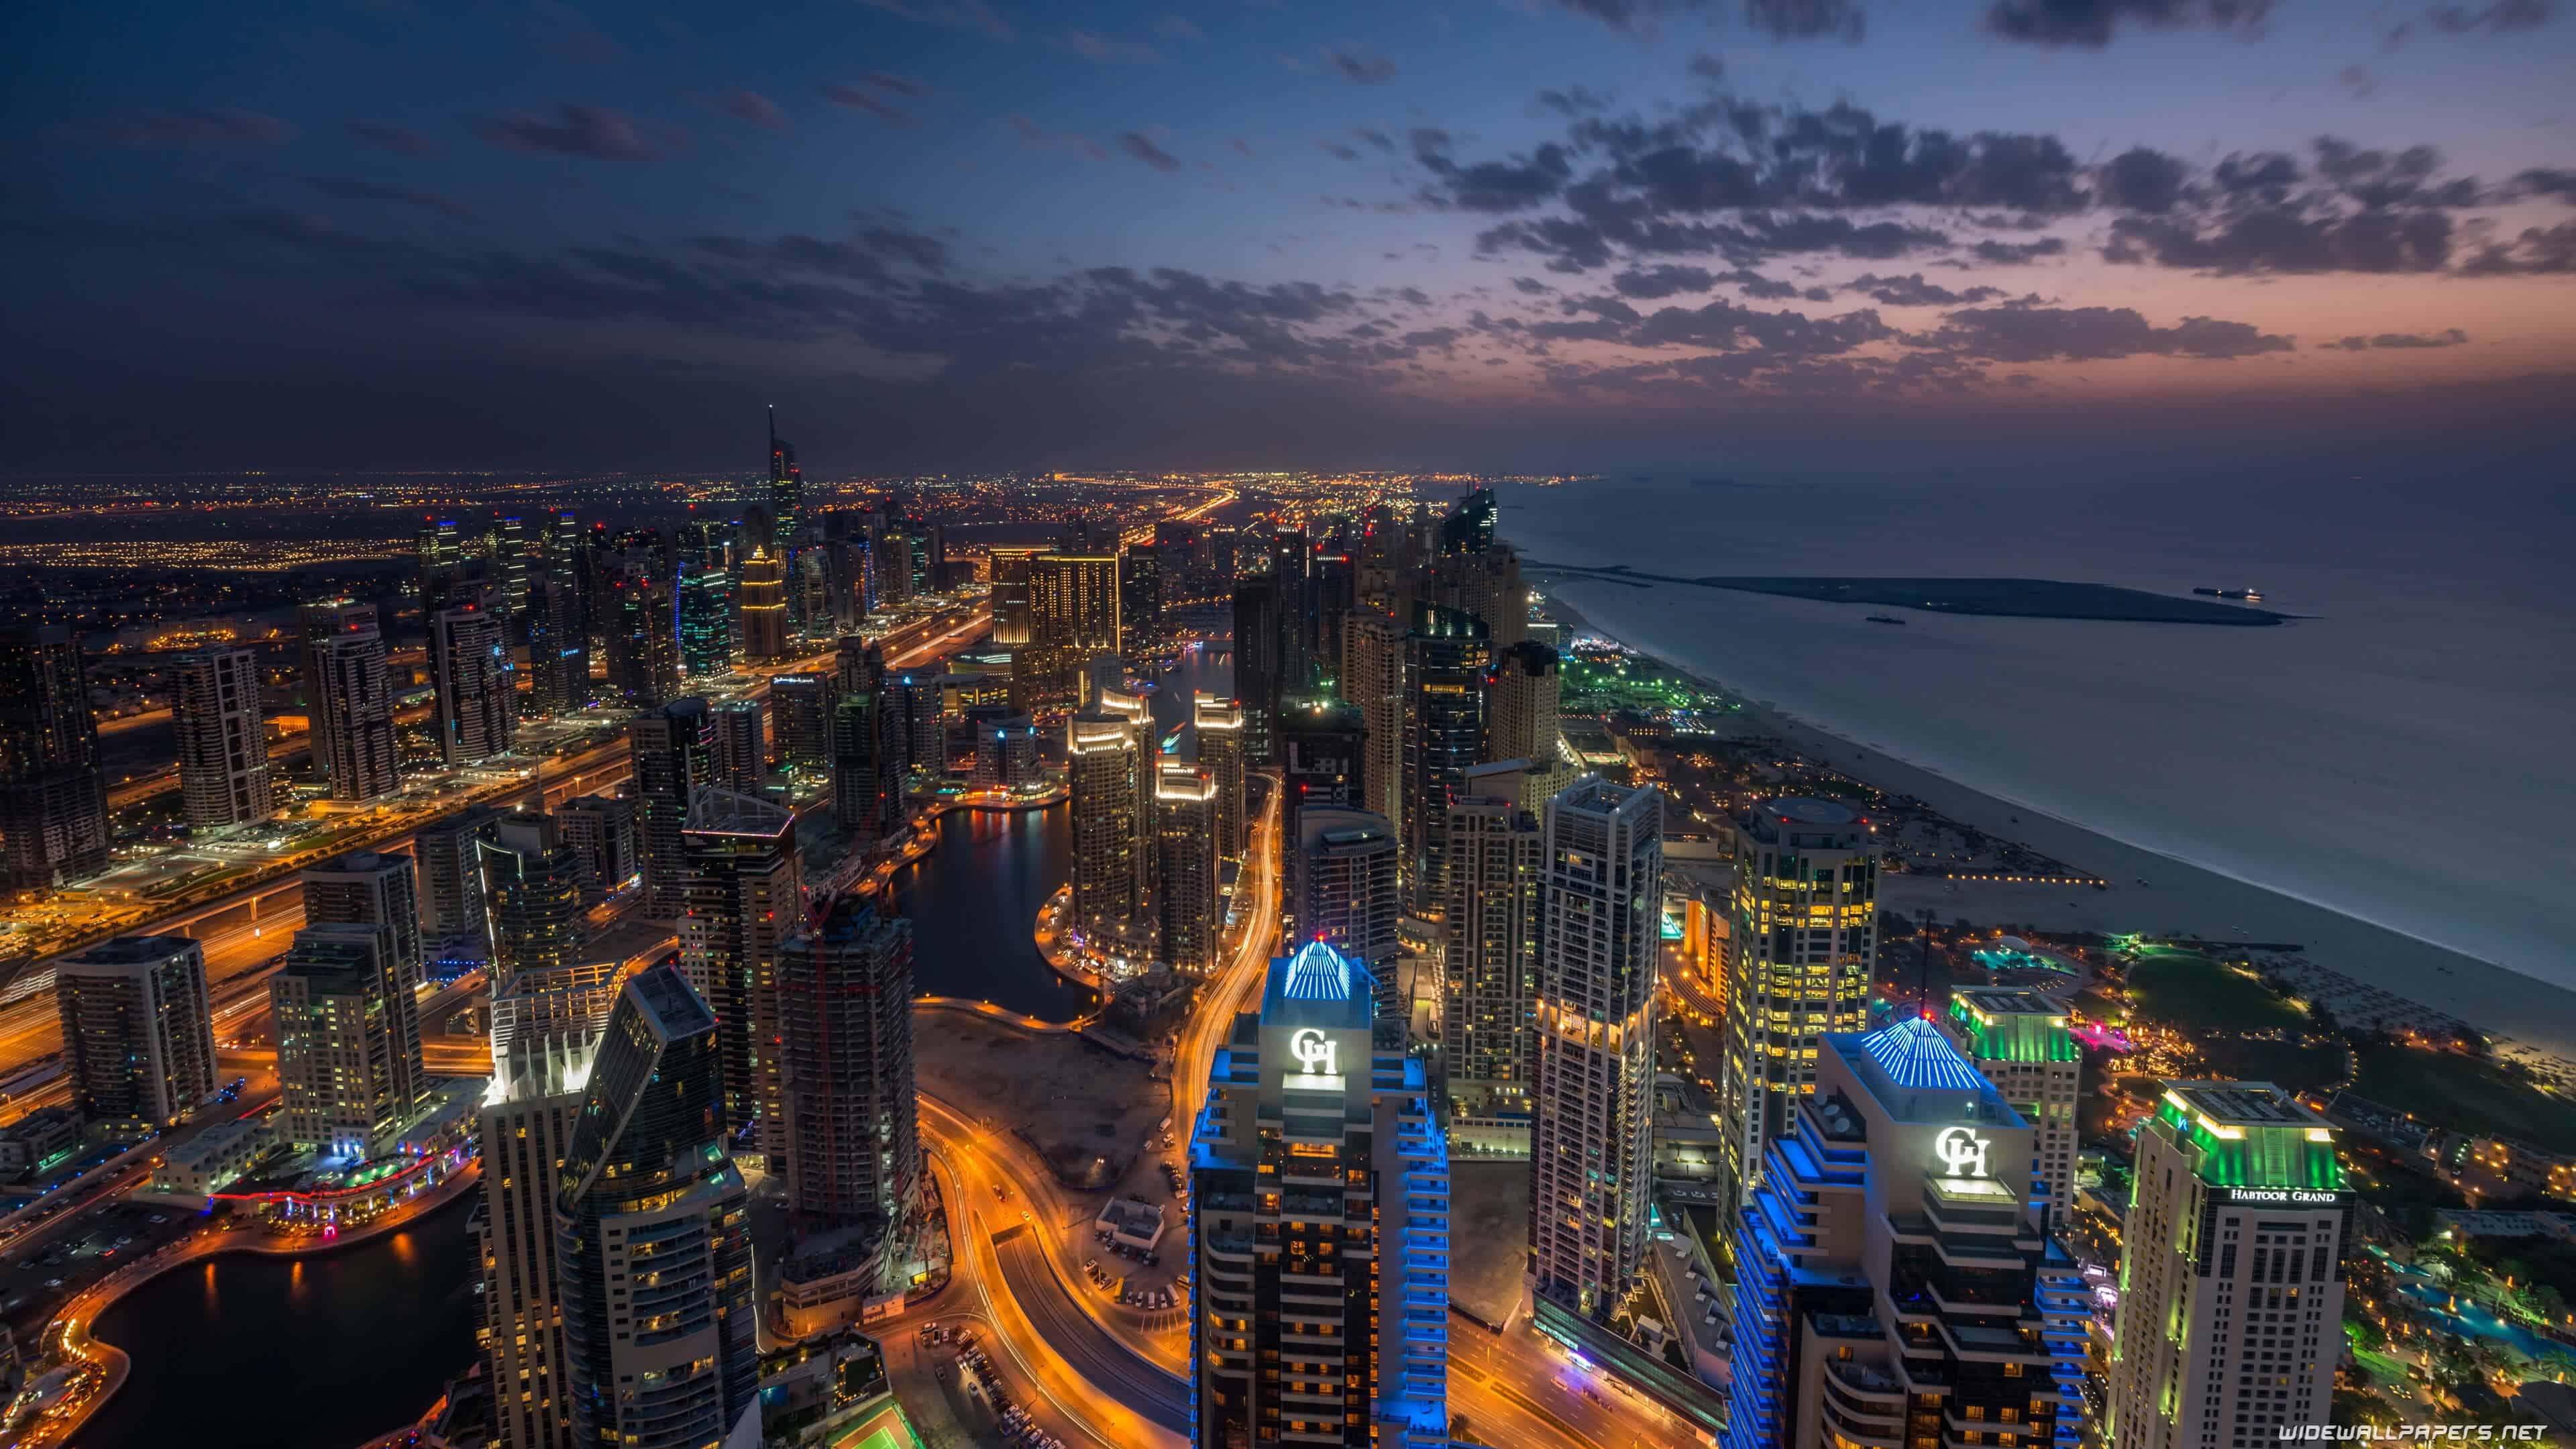 Best Wallpaper Night Dubai - dubai-marina-at-night-united-arab-emirates-uhd-4k-wallpaper  Snapshot-684245.jpg